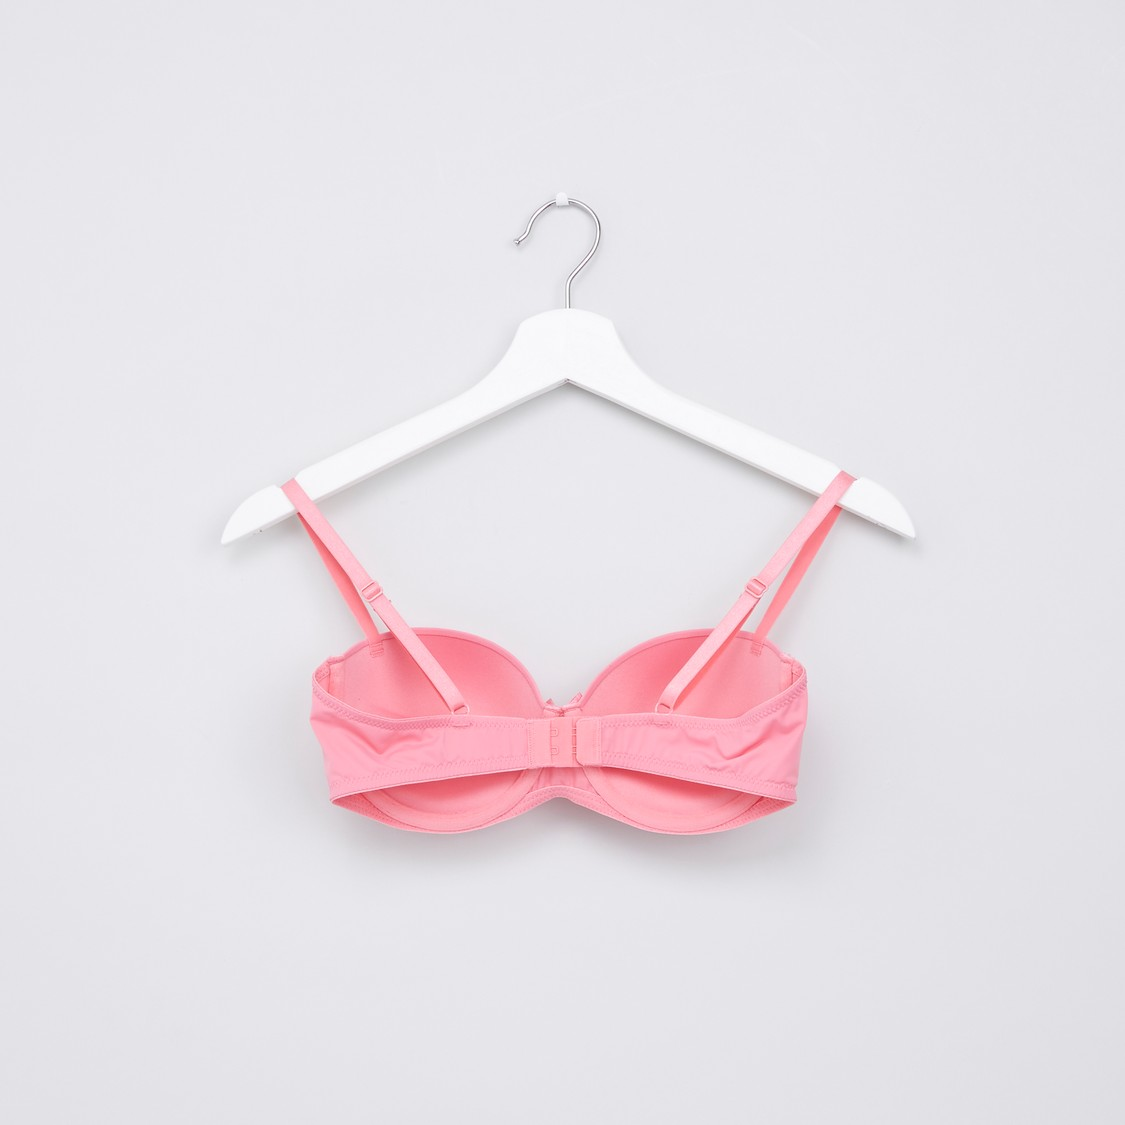 Set of 2 - Solid Push Up Balconette Bra with Hook and Eye Closure